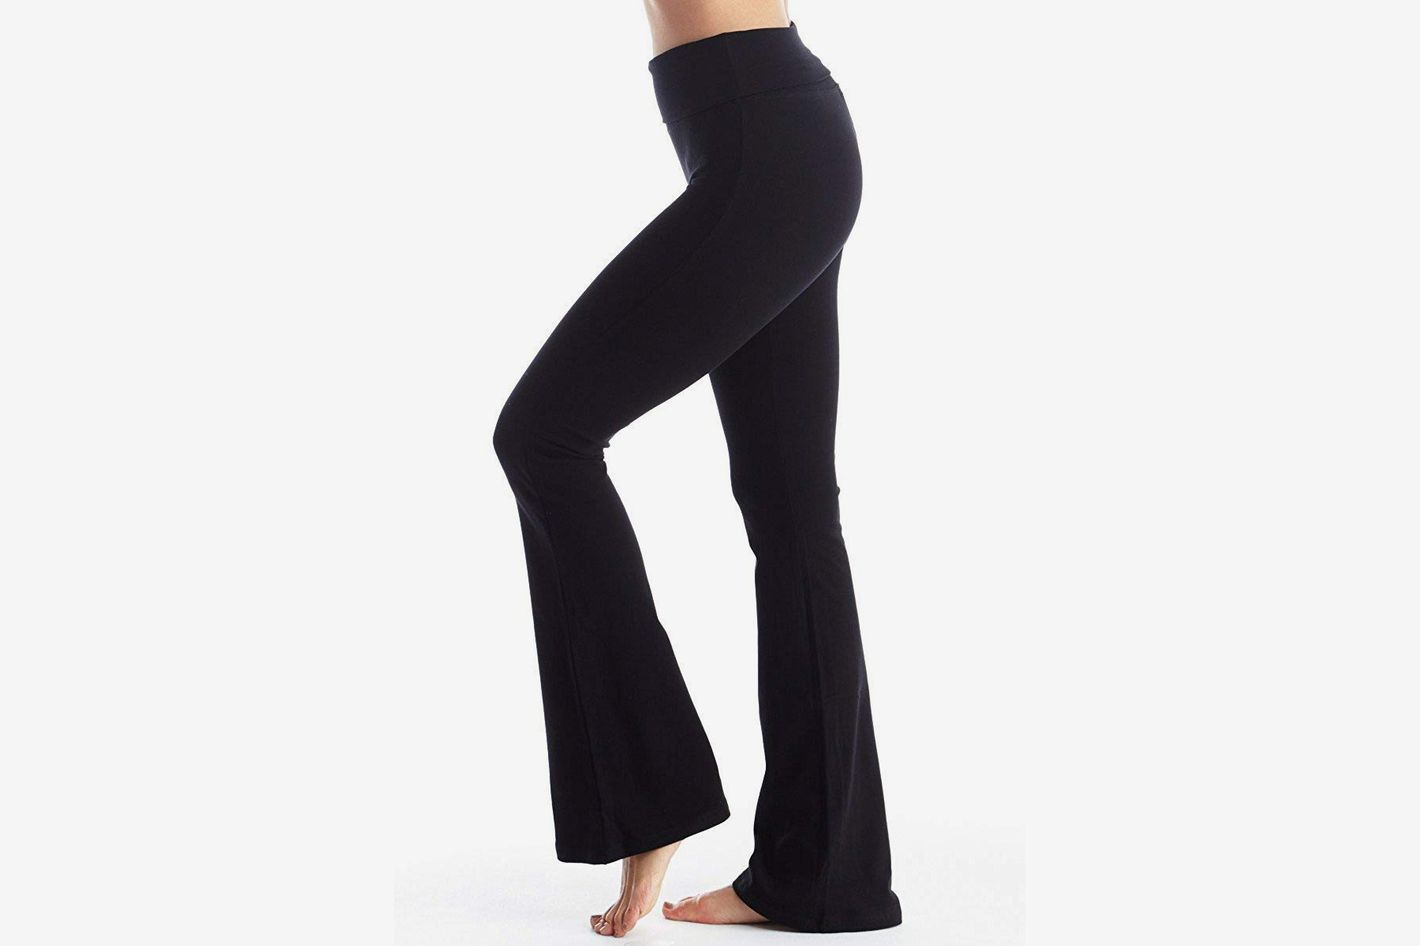 565209da6 Viosi Fold Over Cotton Spandex Yoga Pants